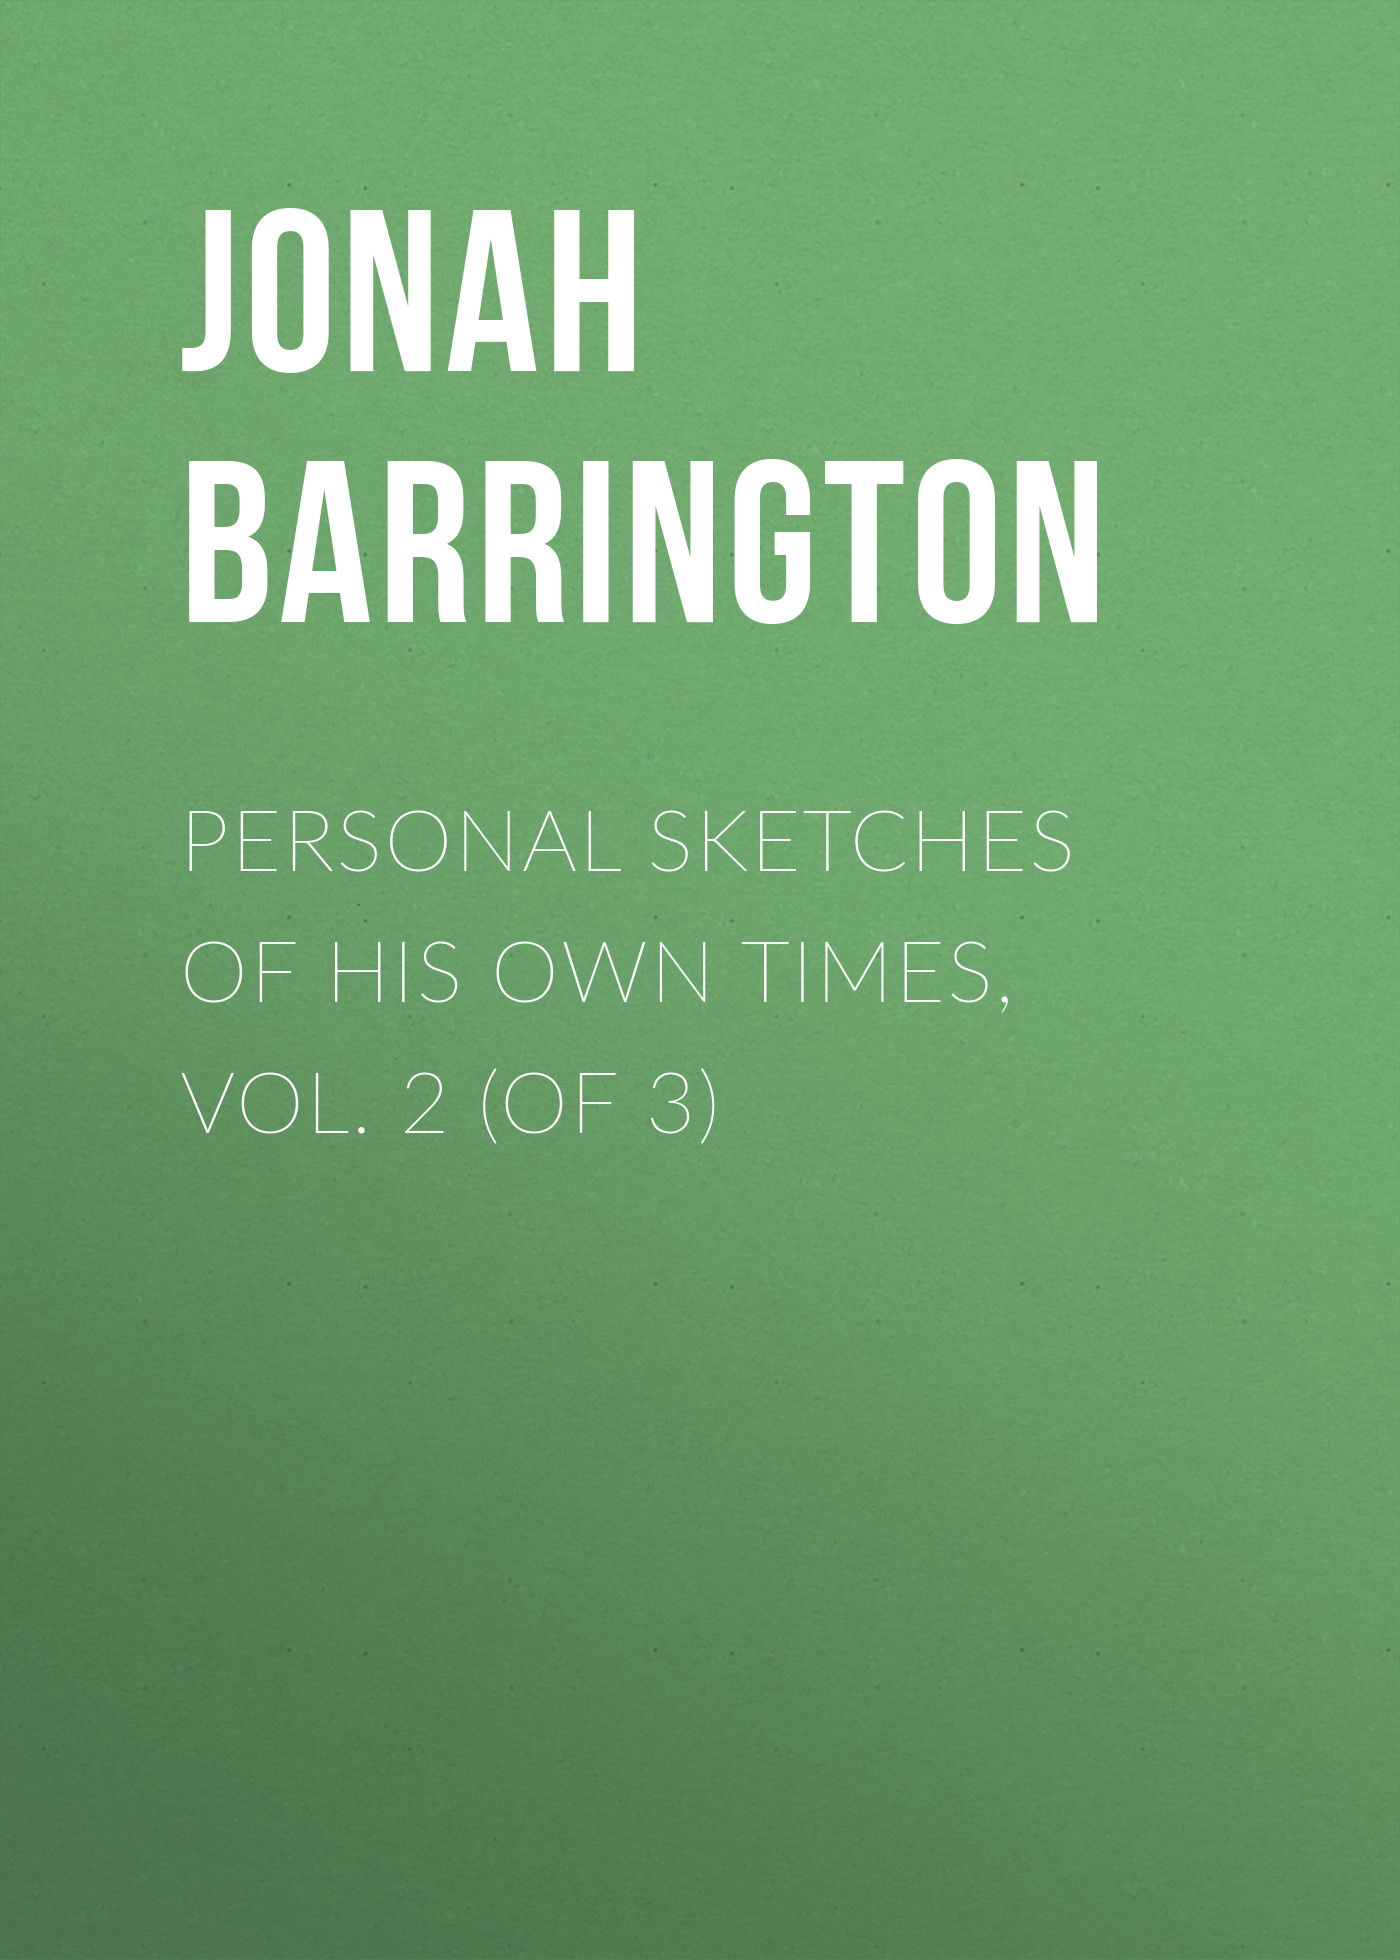 Jonah Barrington Personal Sketches of His Own Times, Vol. 2 (of 3) jonah barrington personal sketches of his own times vol 2 of 3